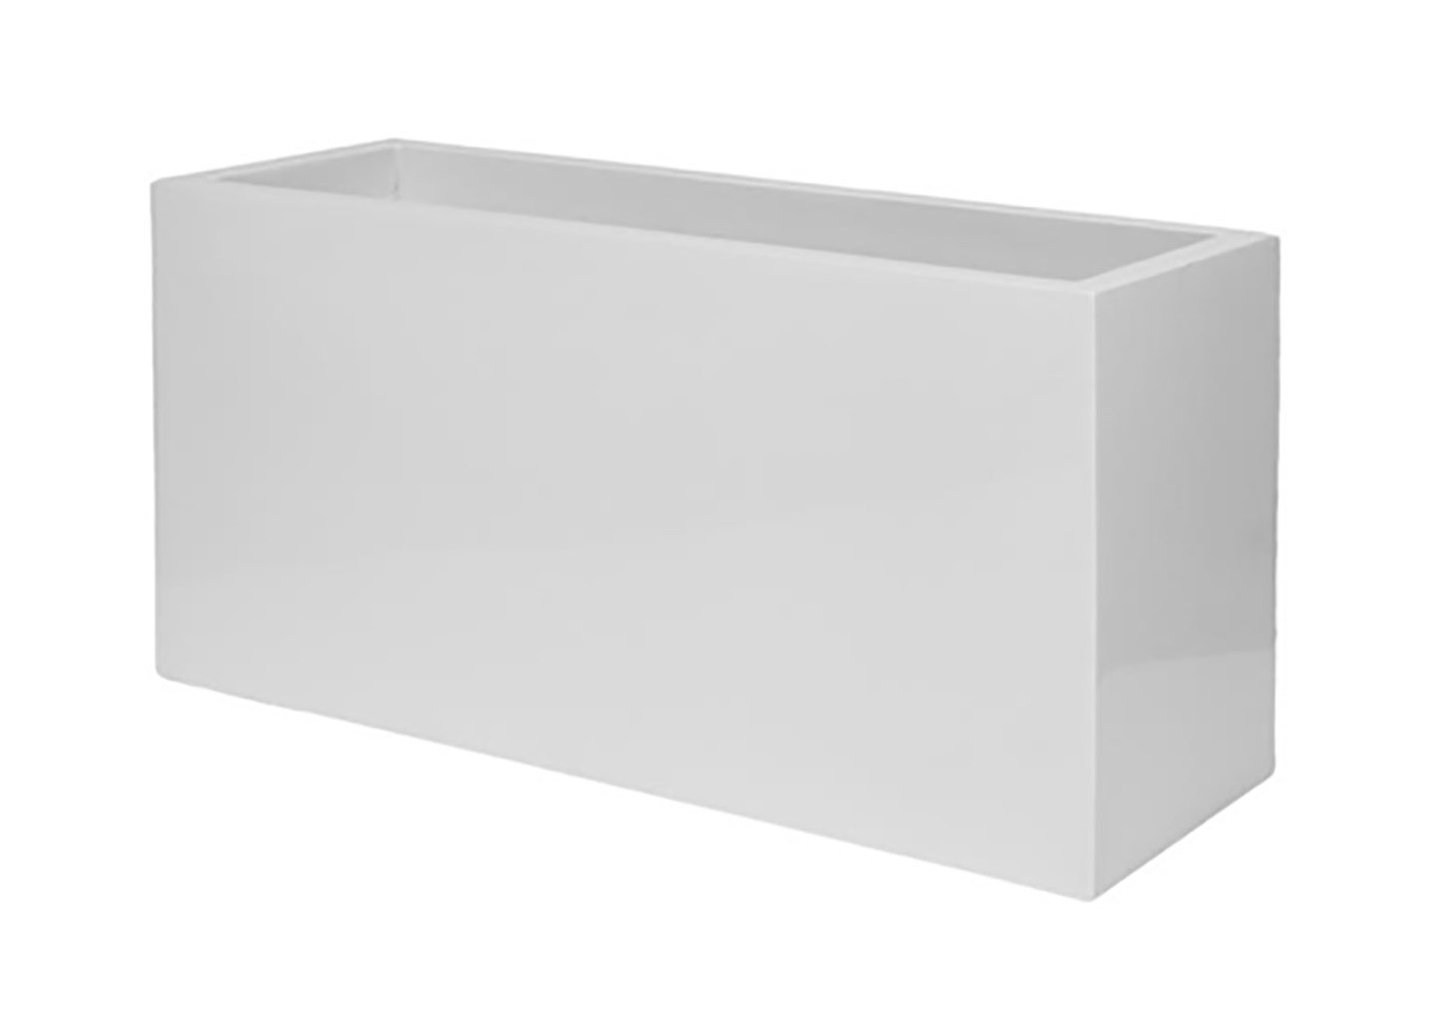 "Large White Rectangle Planter box Indoor & Outdoor 20""H x 16""W x 39""L - Flower Planters By Pottery Pots by Pottery Pots"